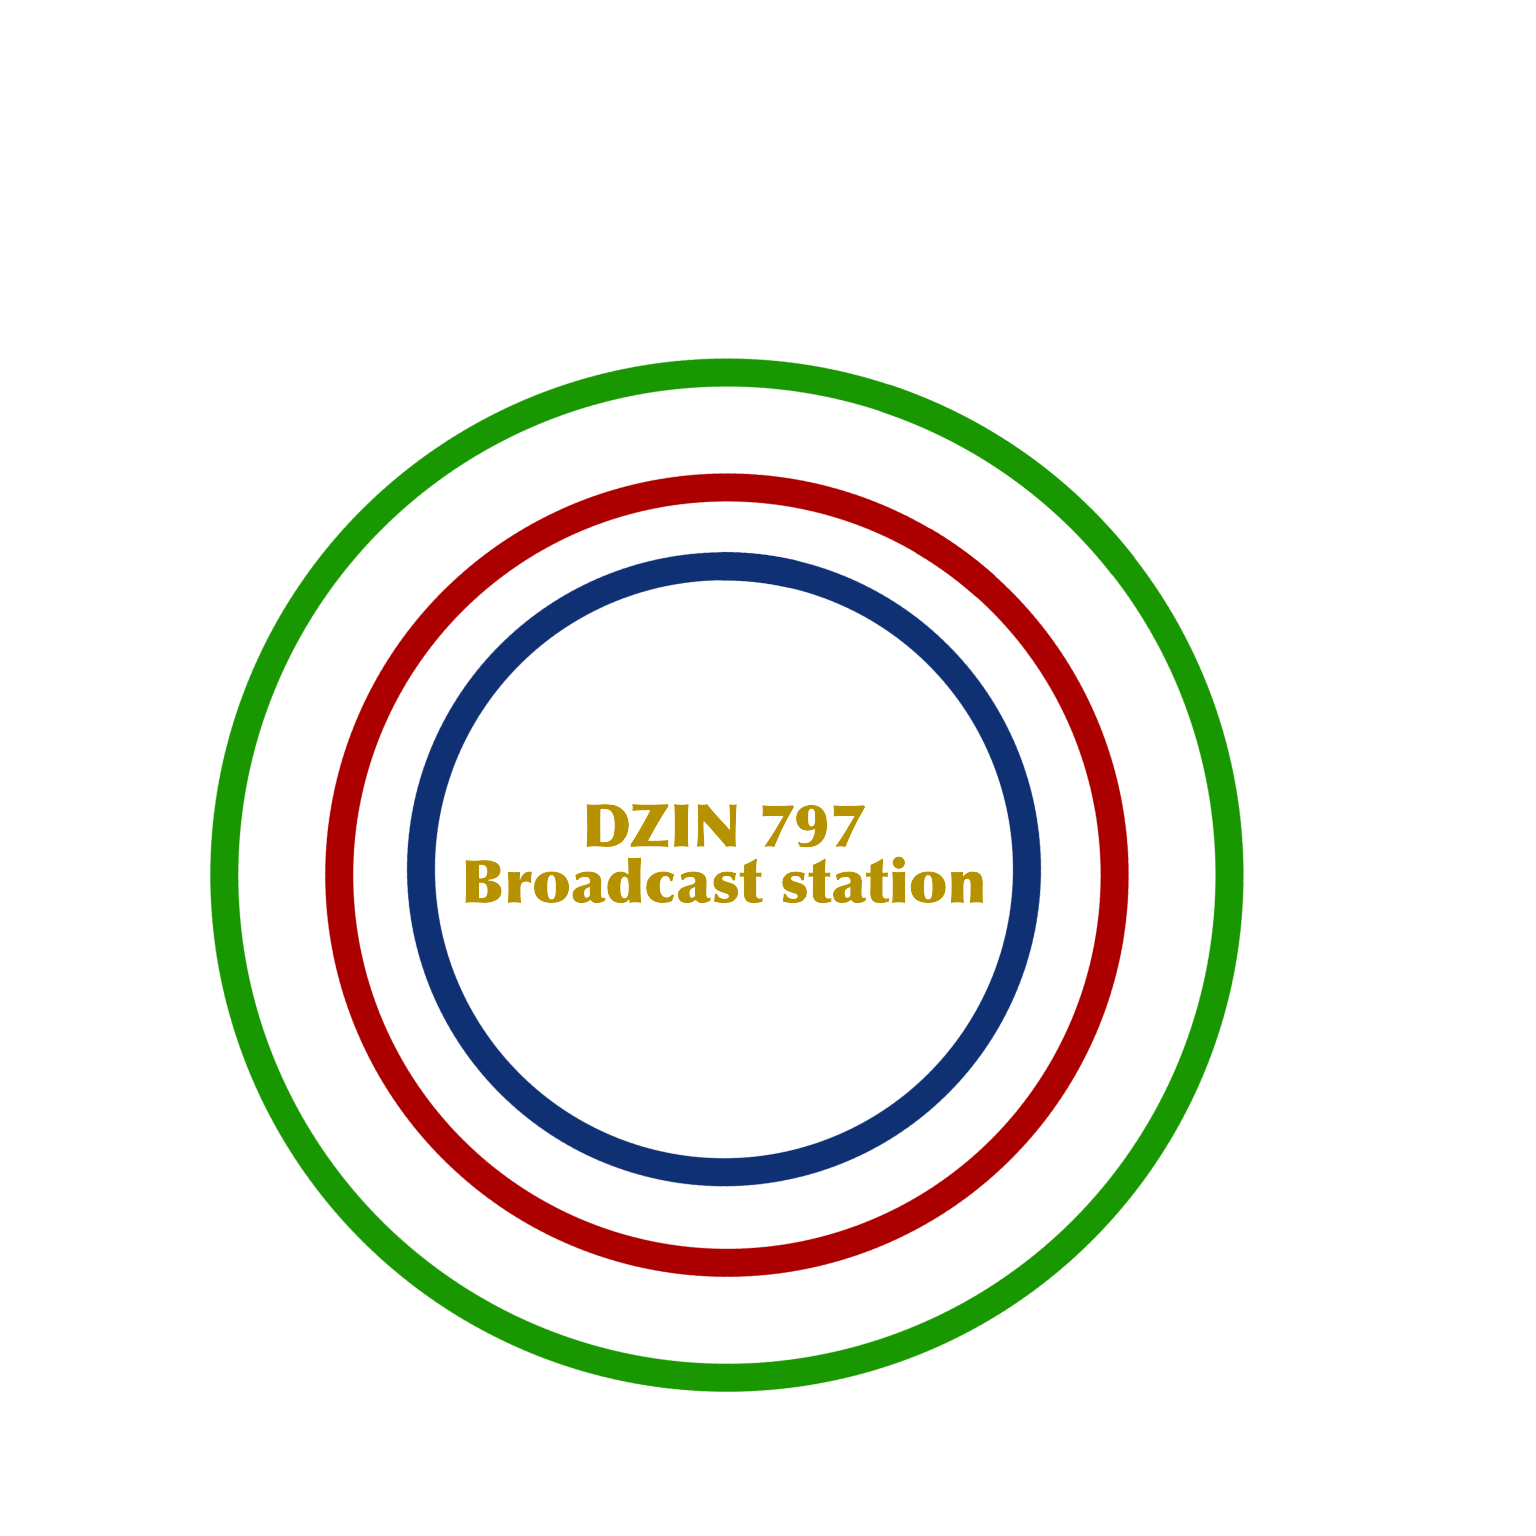 DZIN 797 broadcast news station